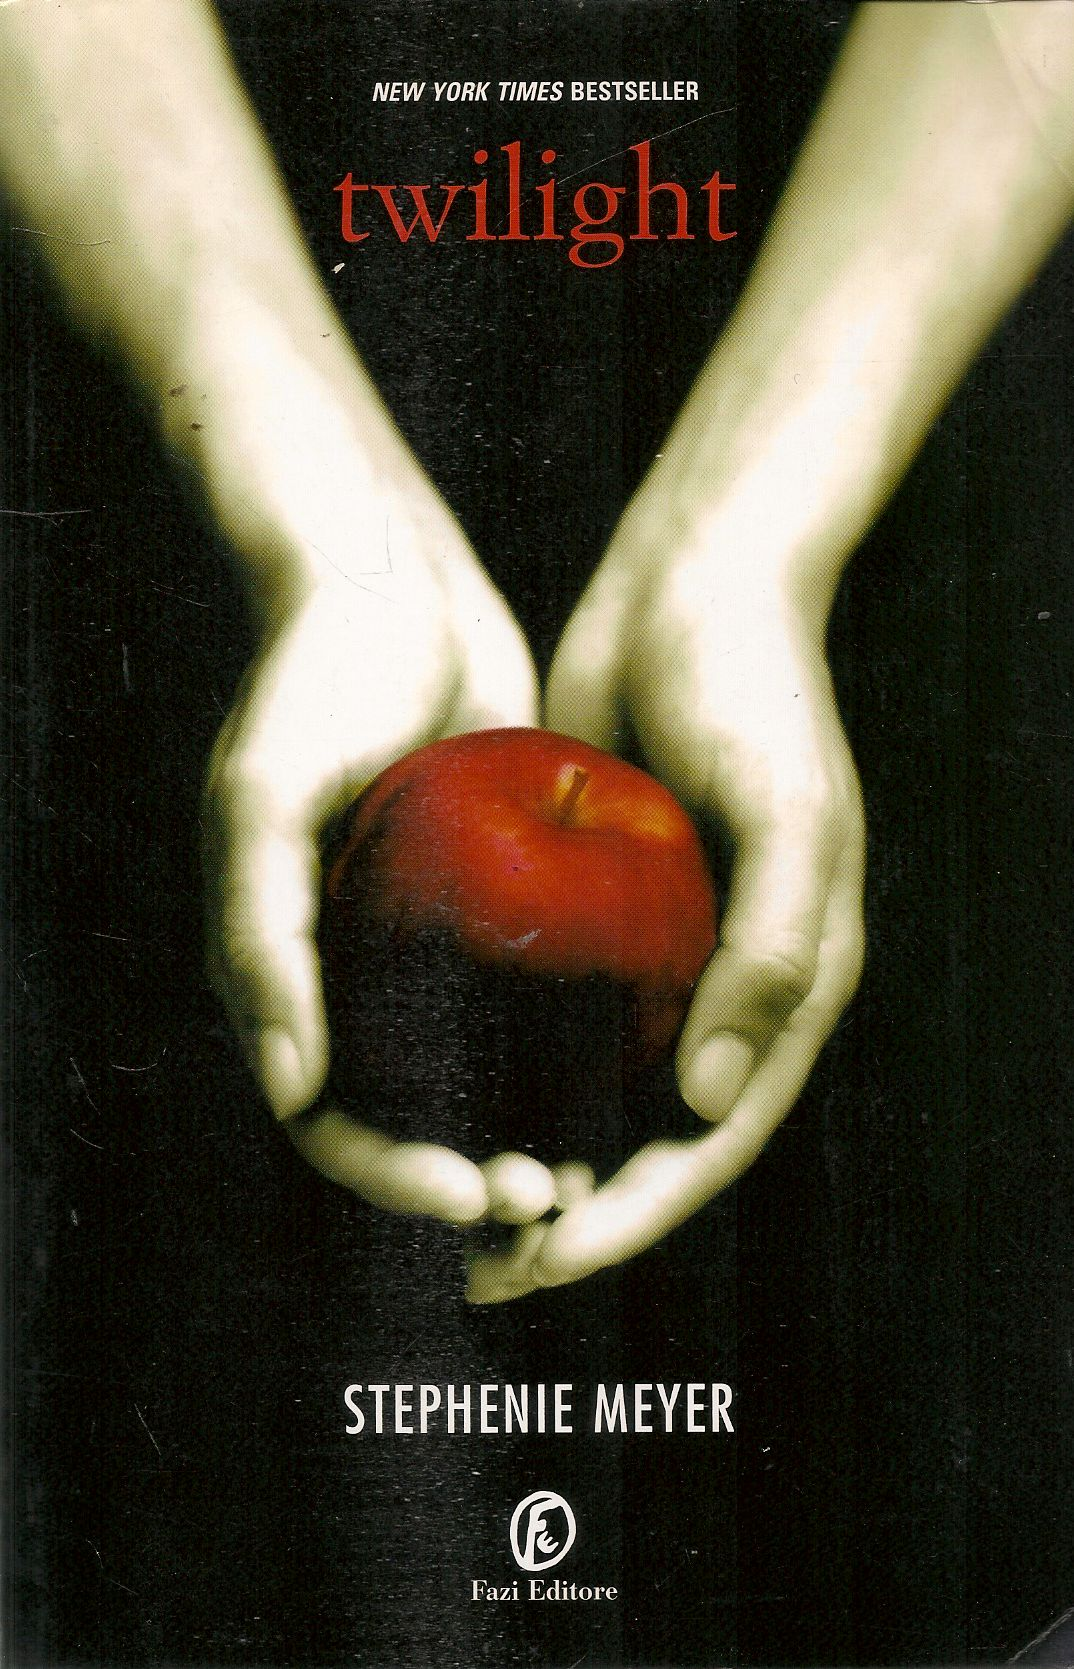 TWLIGHT - STEPHANIE MEYER